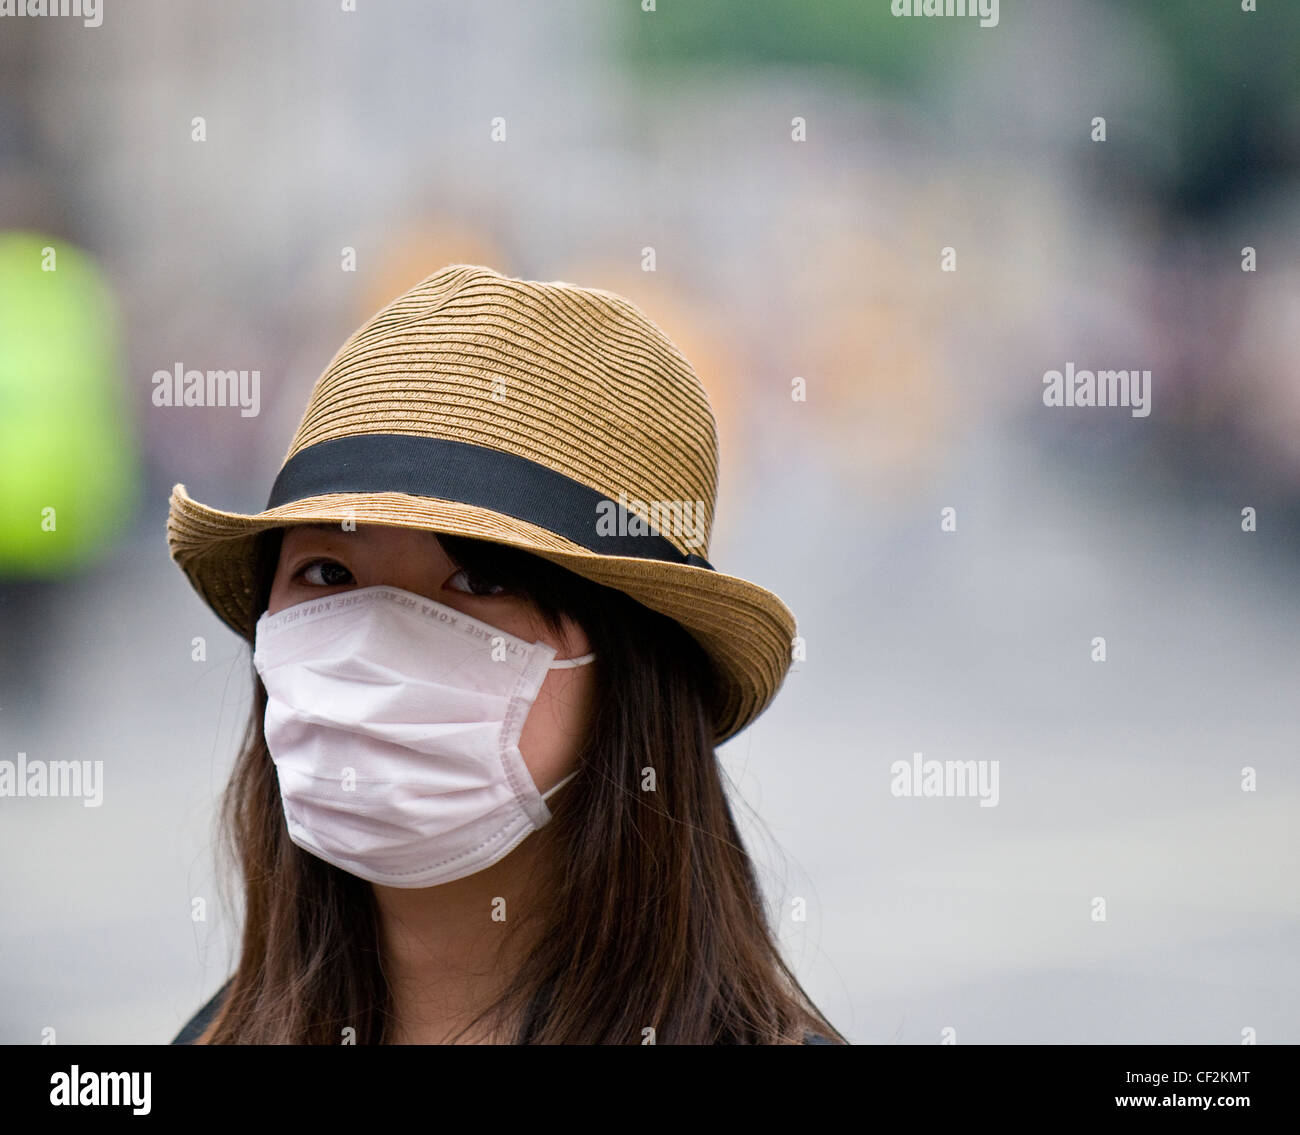 A young woman wearing a face mask to protect herself against catching swine flu. - Stock Image